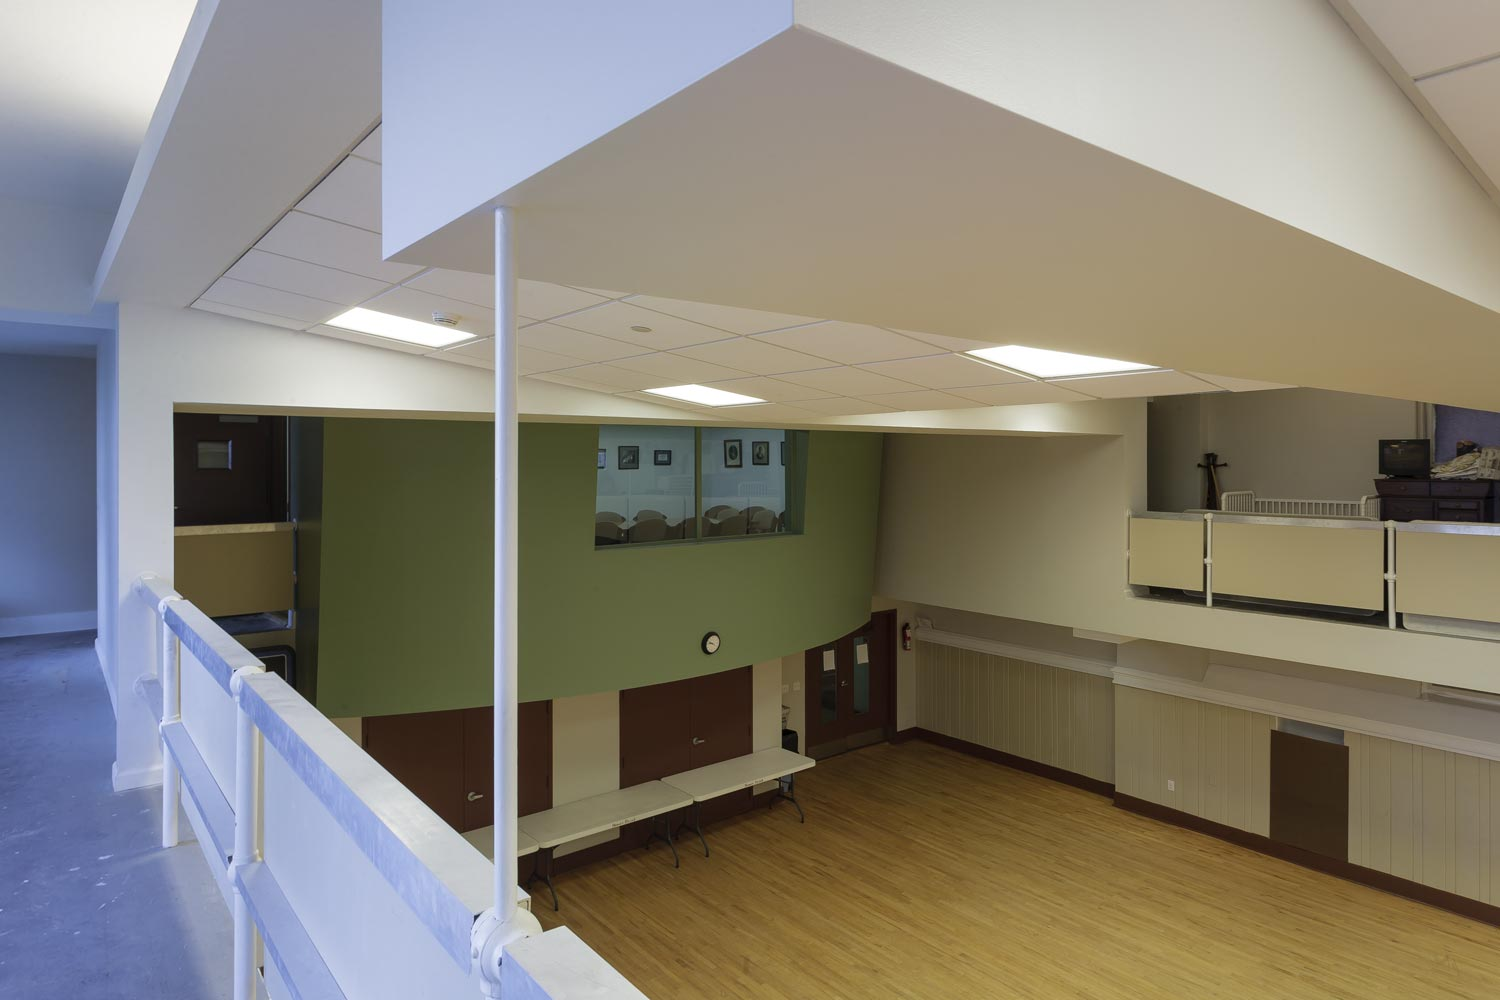 The project features a renovated gym at the first floor.